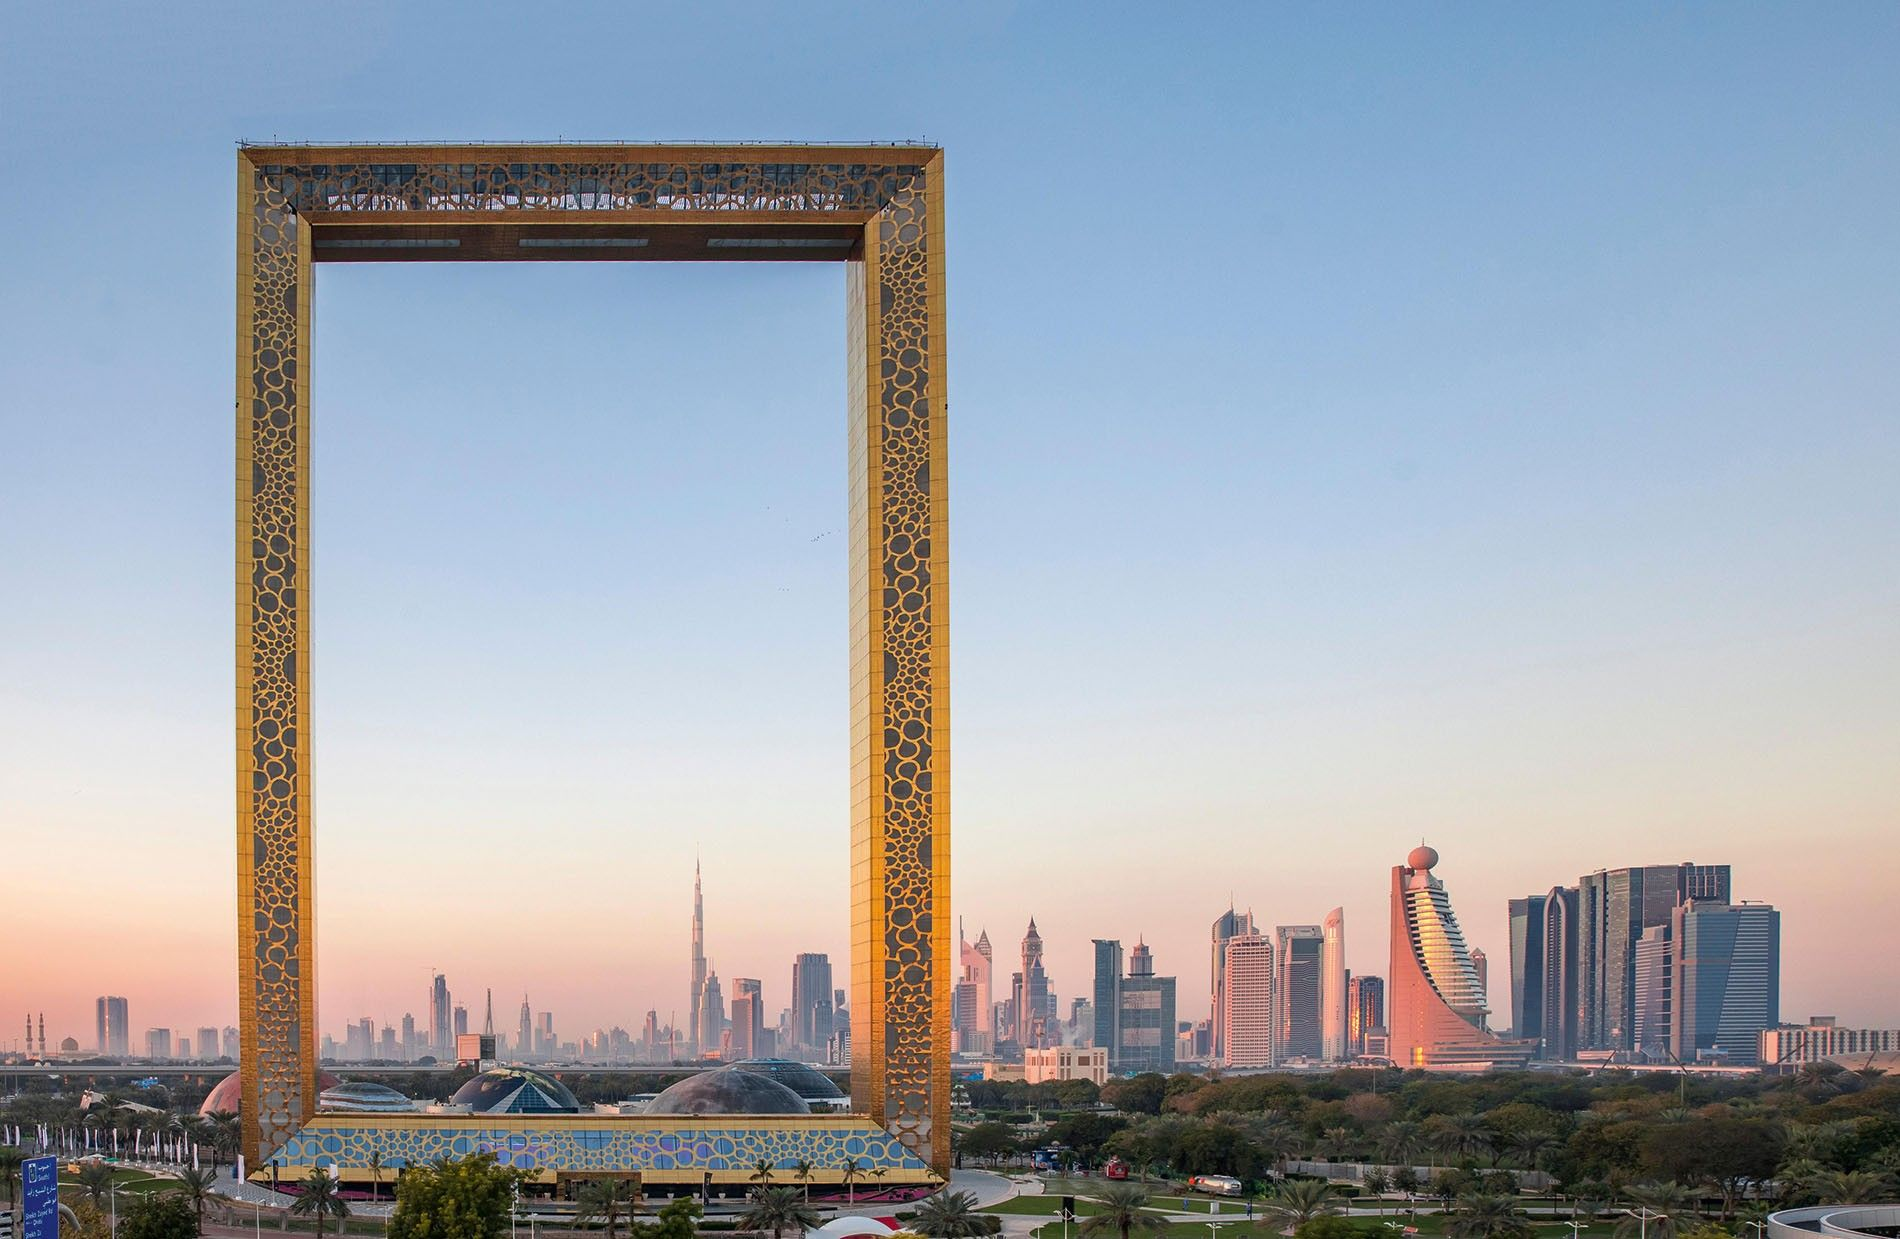 Dubai Frame building at sunrise.